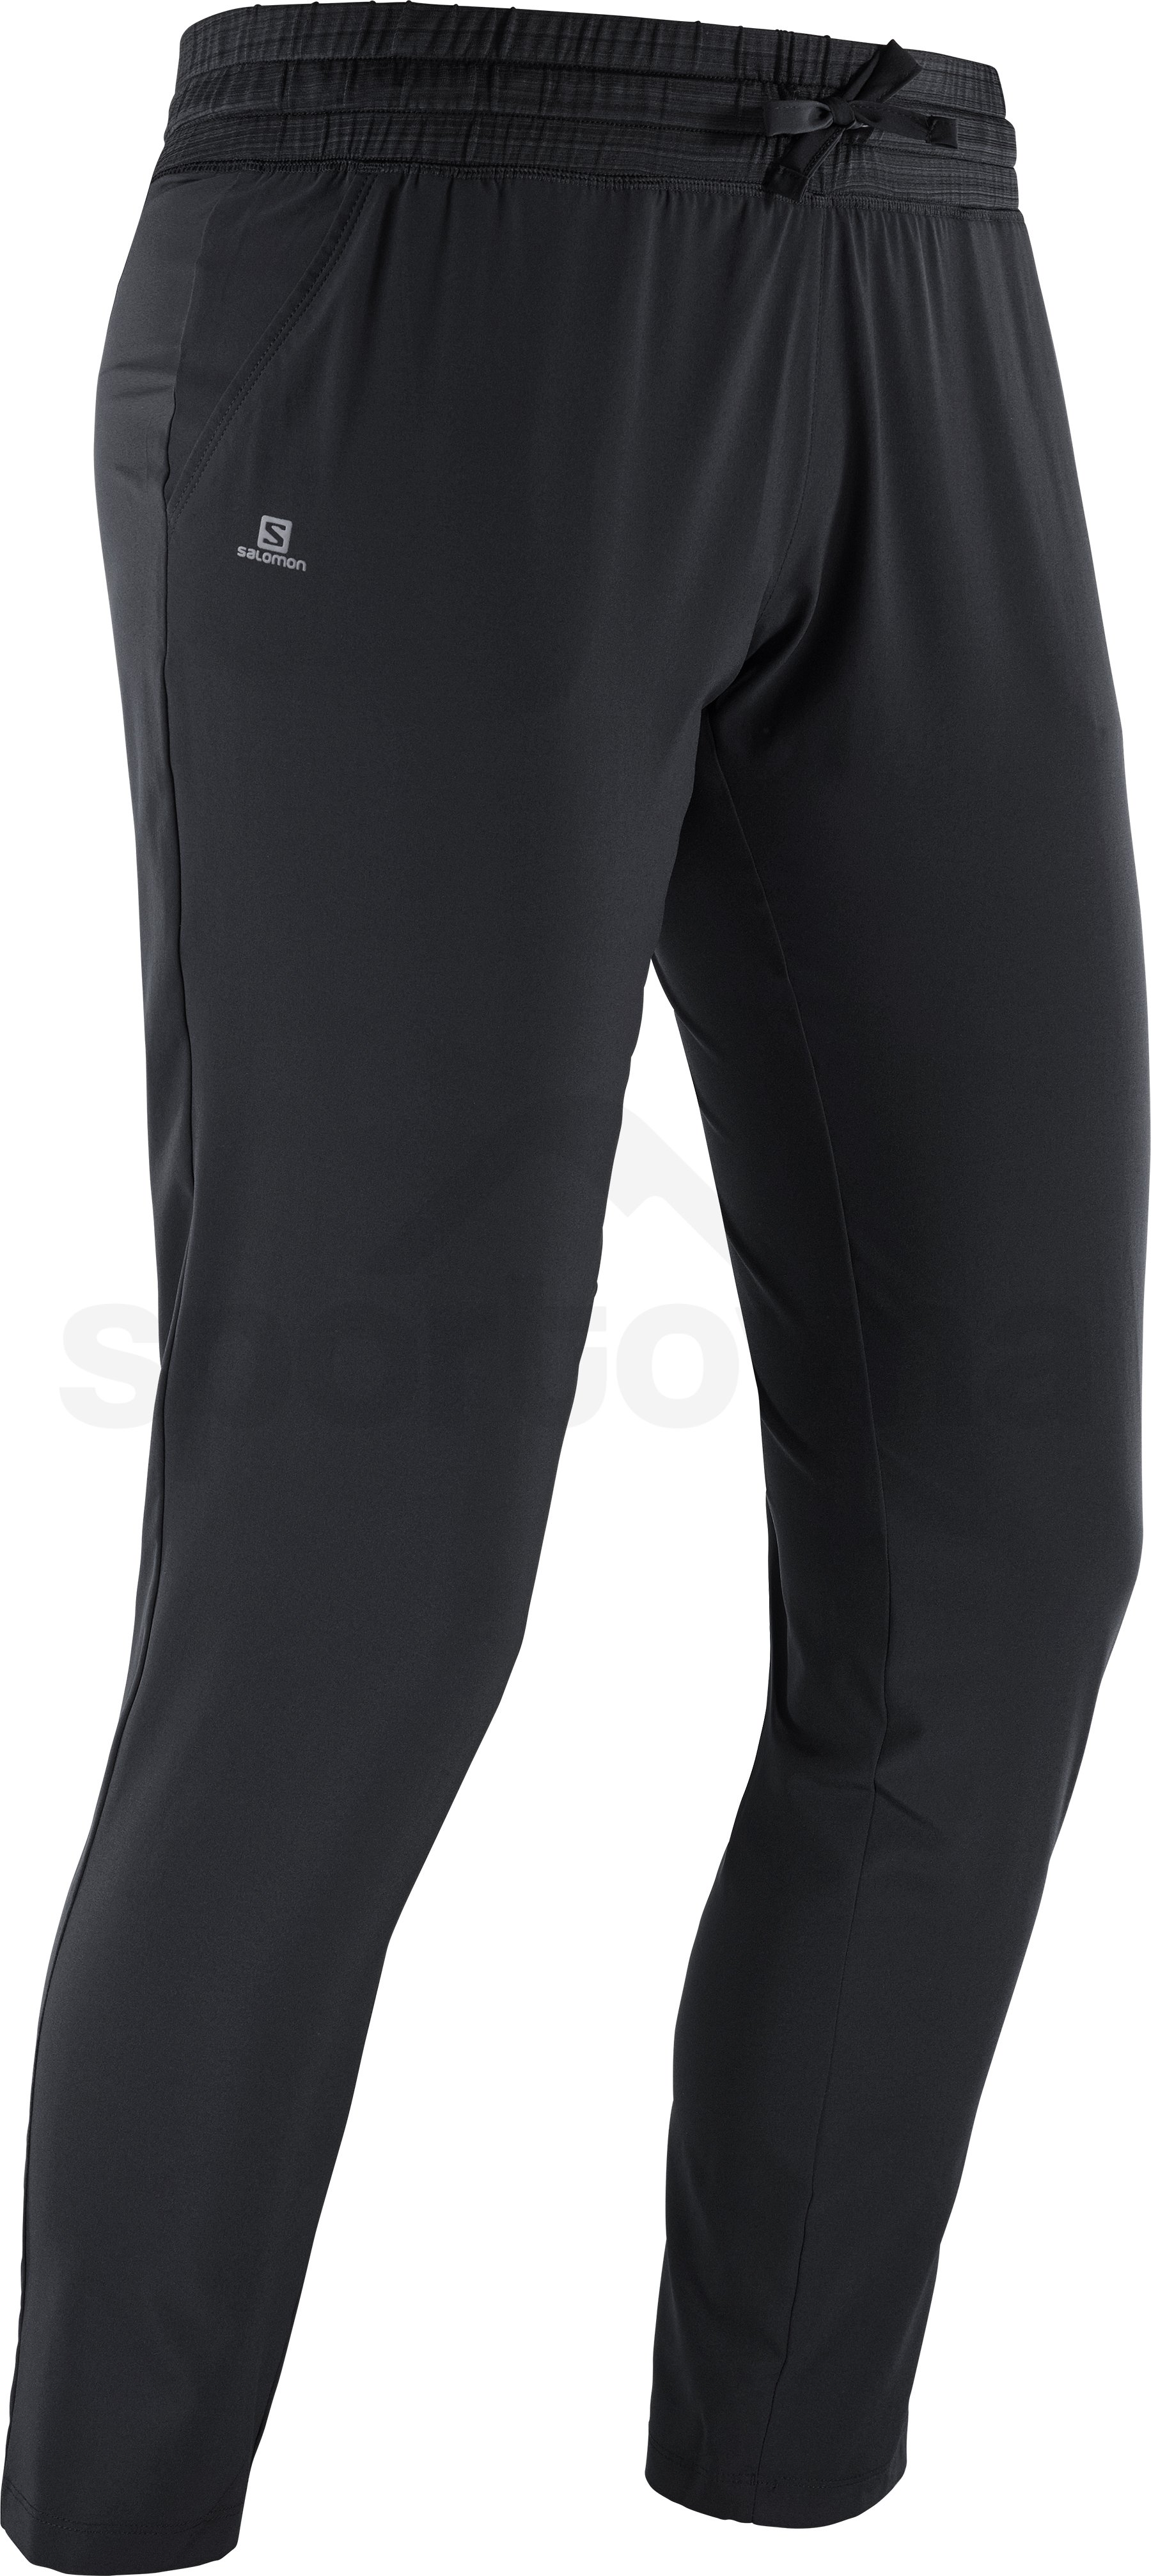 LC1031500_2_w_cometpant_black_run.jpg.originaln